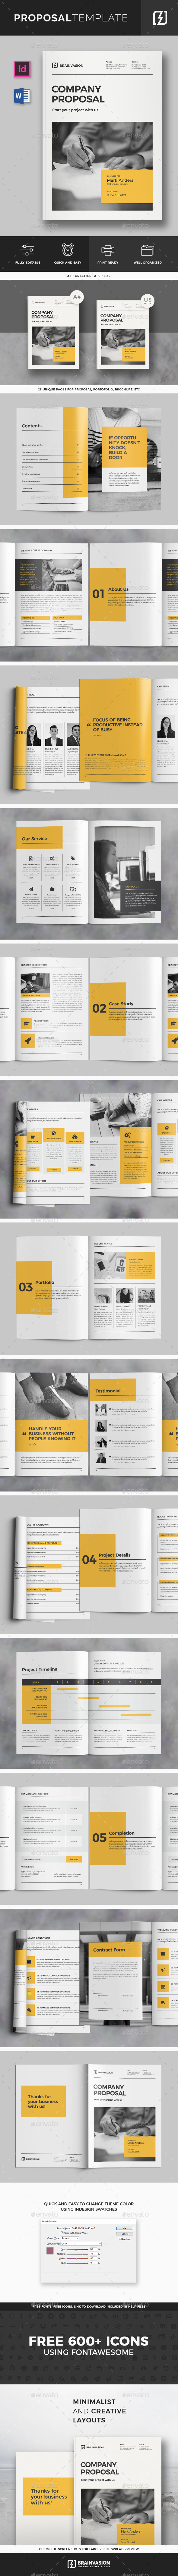 Proposal Template Vol.02 - Proposals & Invoices Stationery